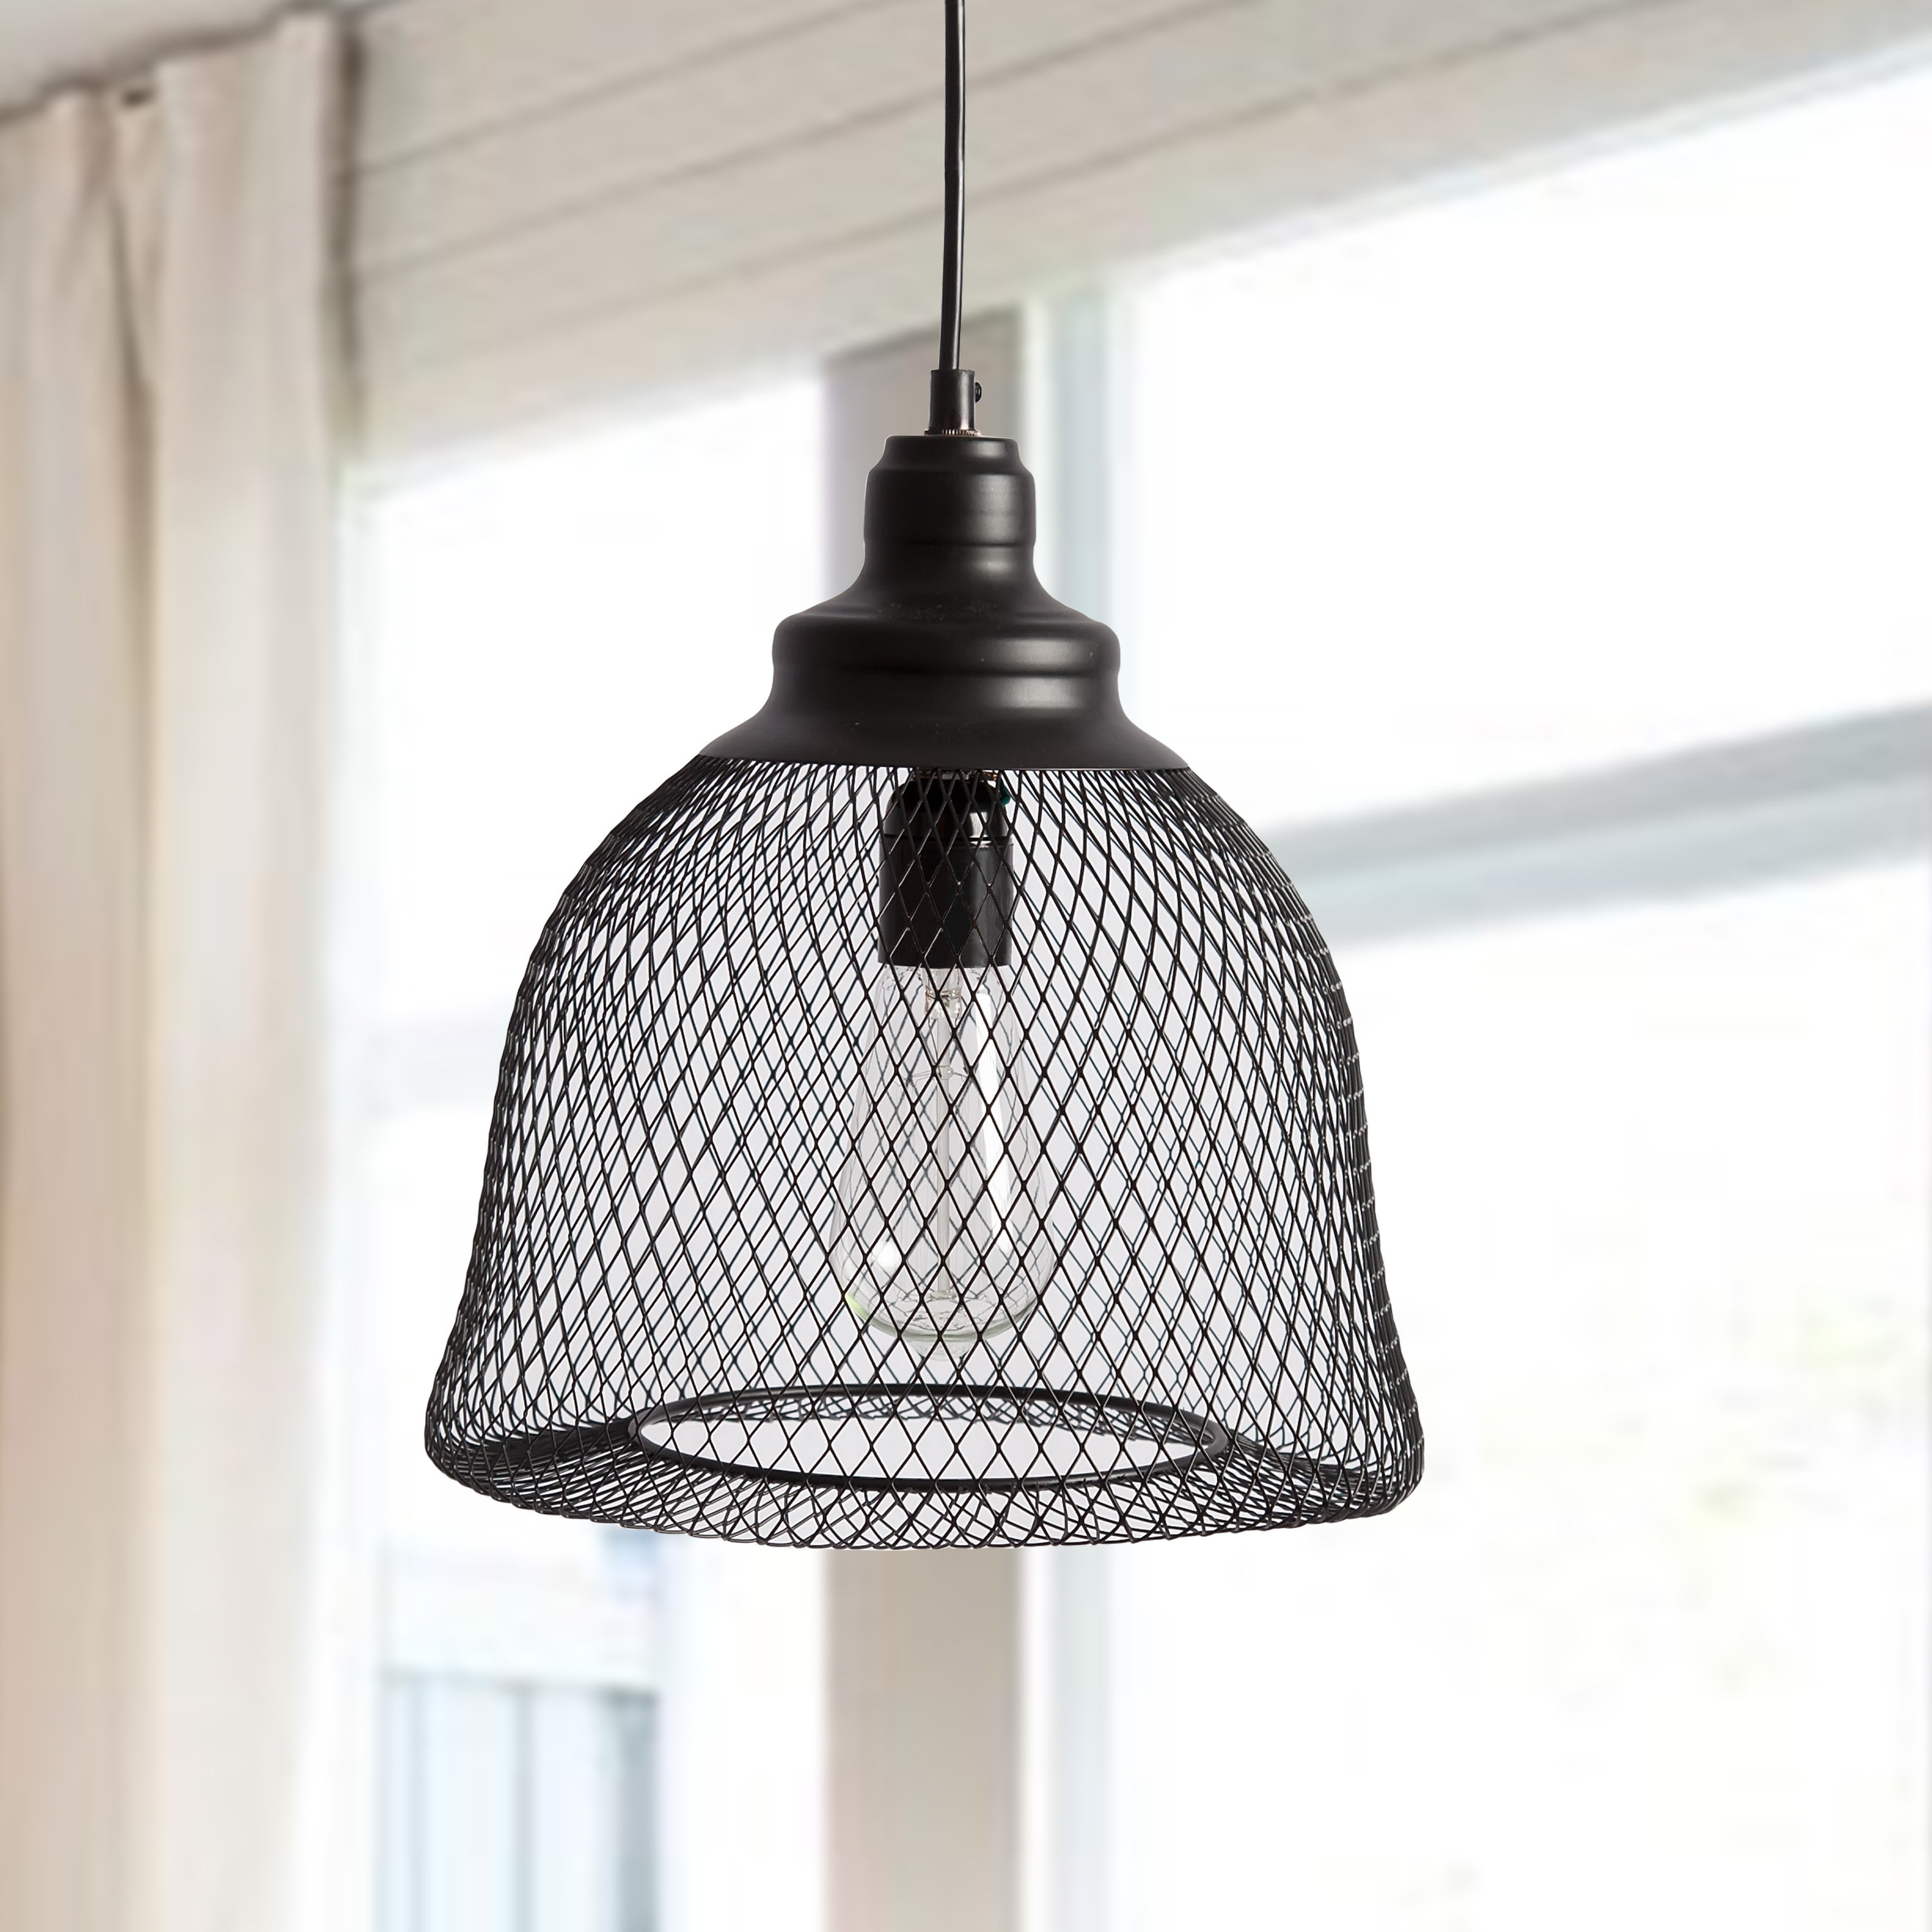 Scruggs 1 Light Geometric Pendants Within Best And Newest Mccandless 1 Light Single Bell Pendant (View 21 of 25)